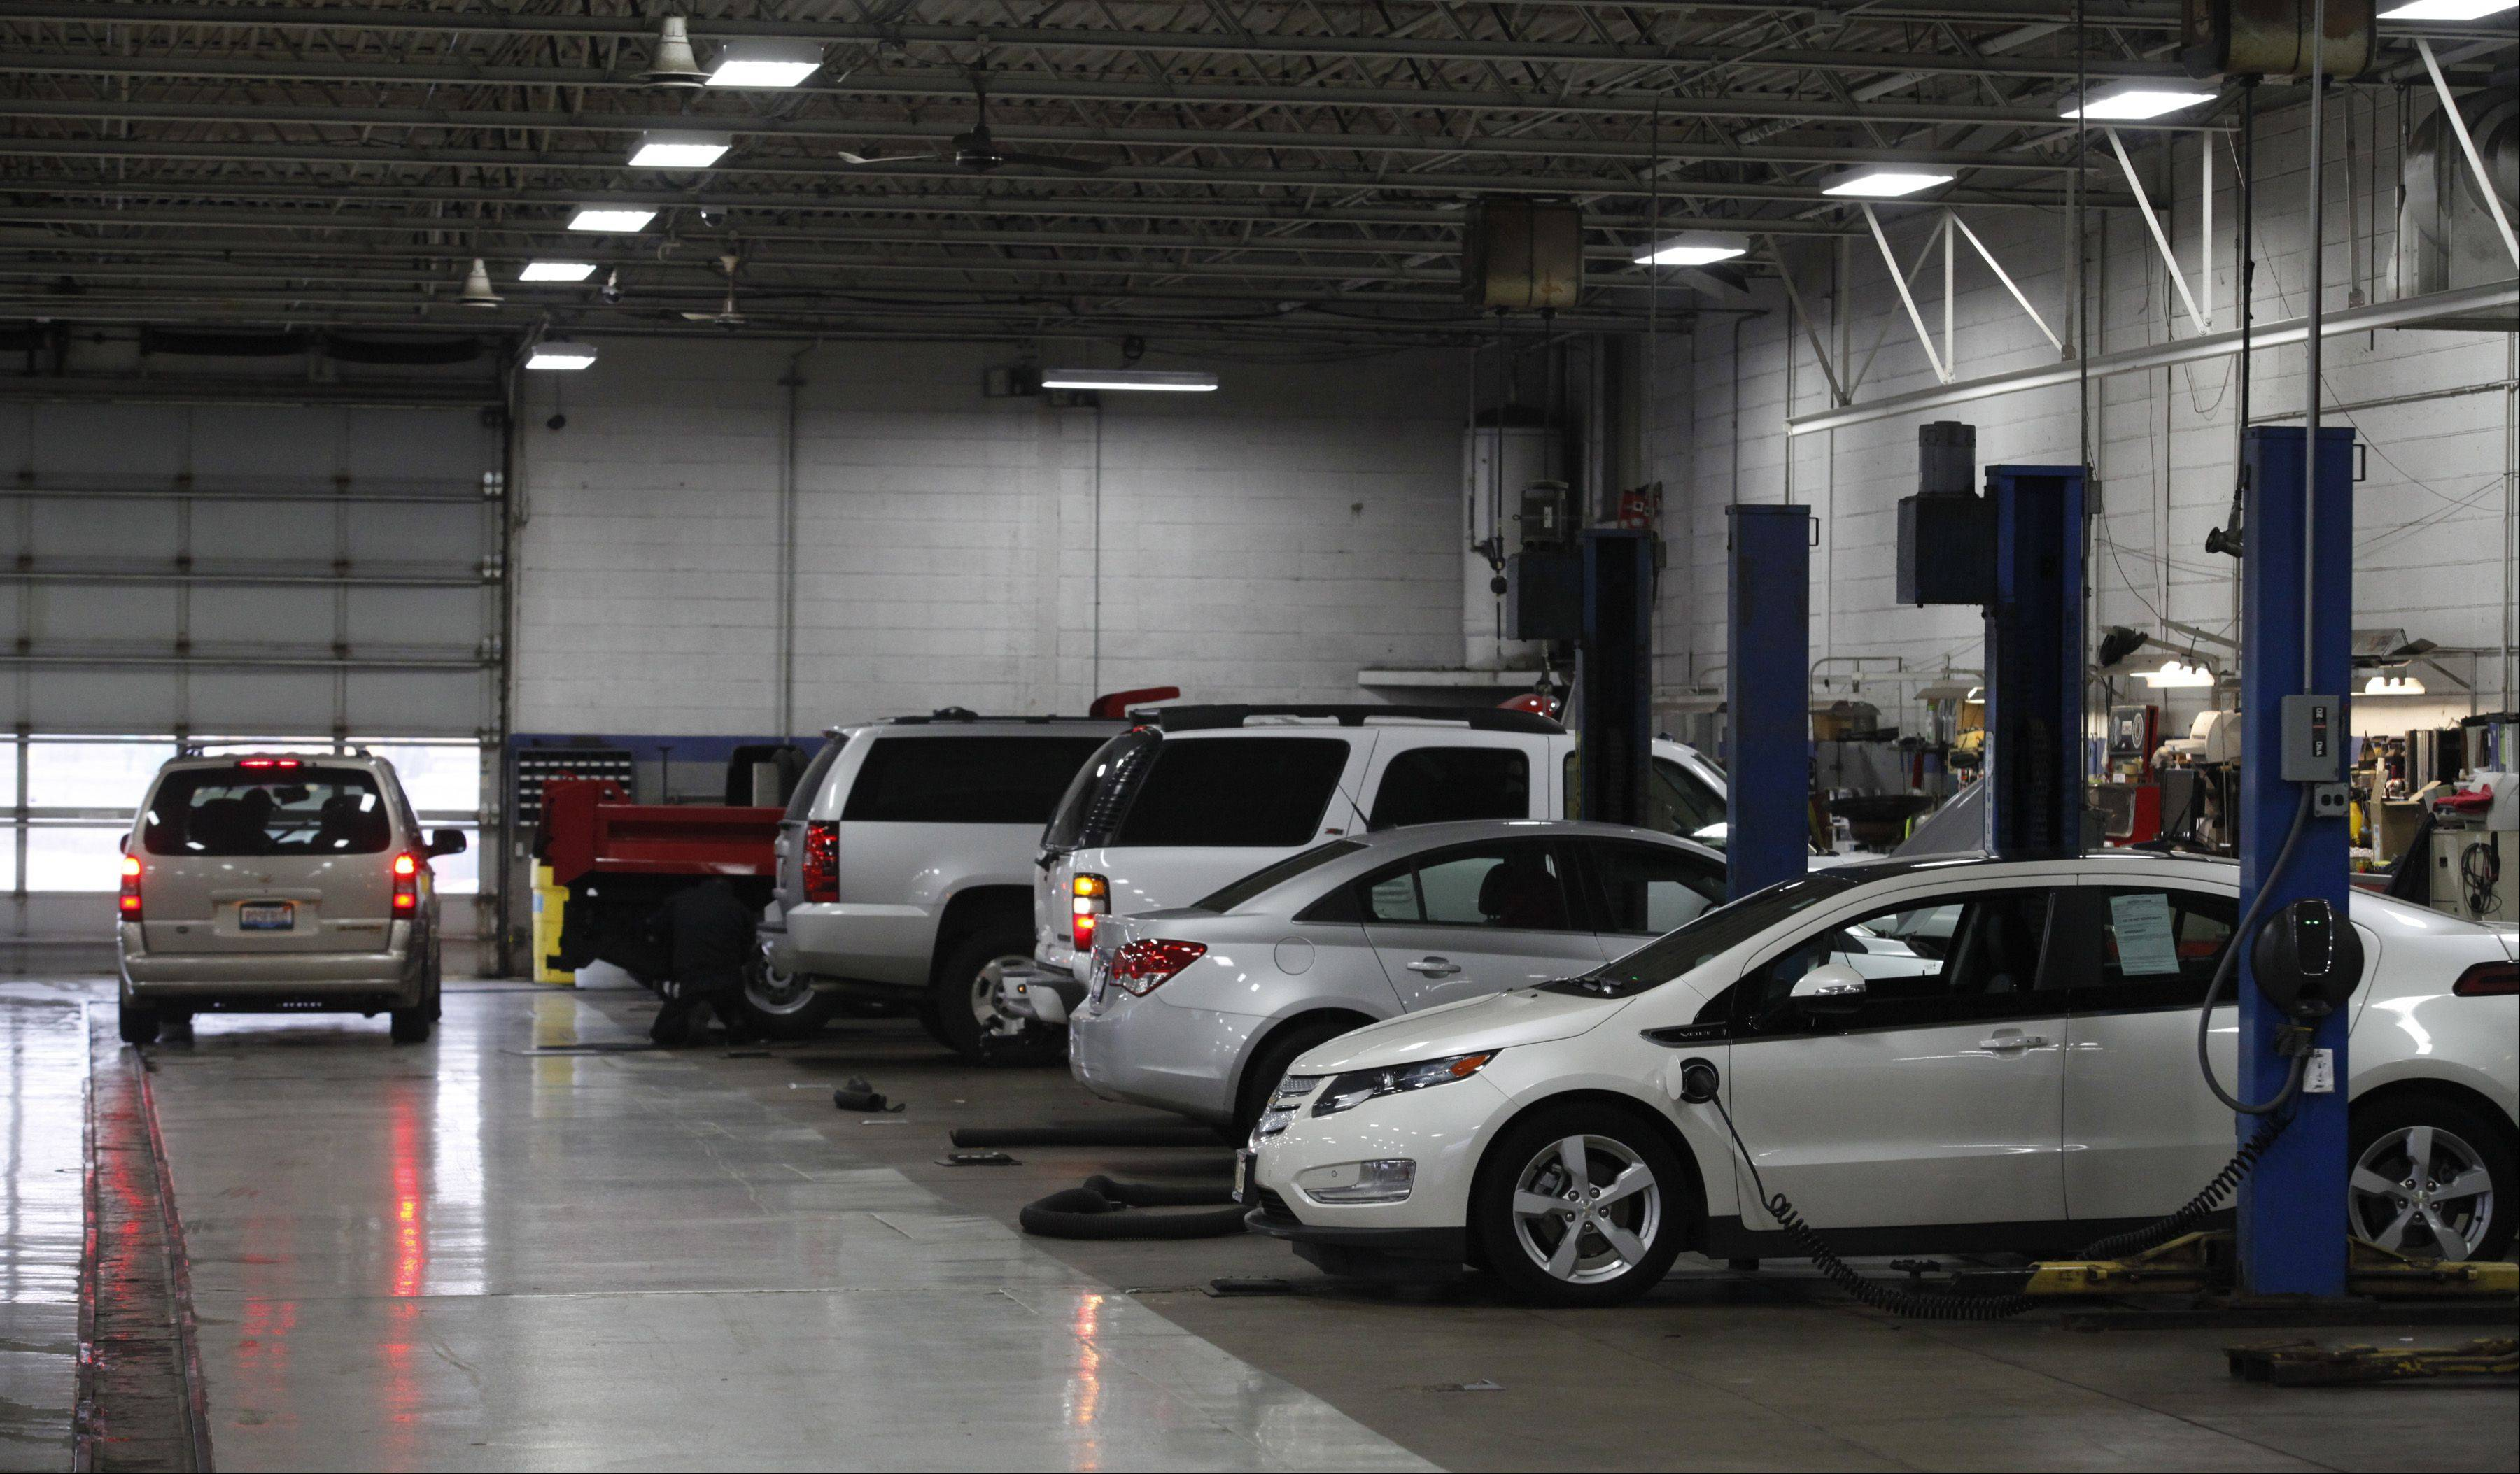 A view of the service department work bays at Biggers Chevrolet.